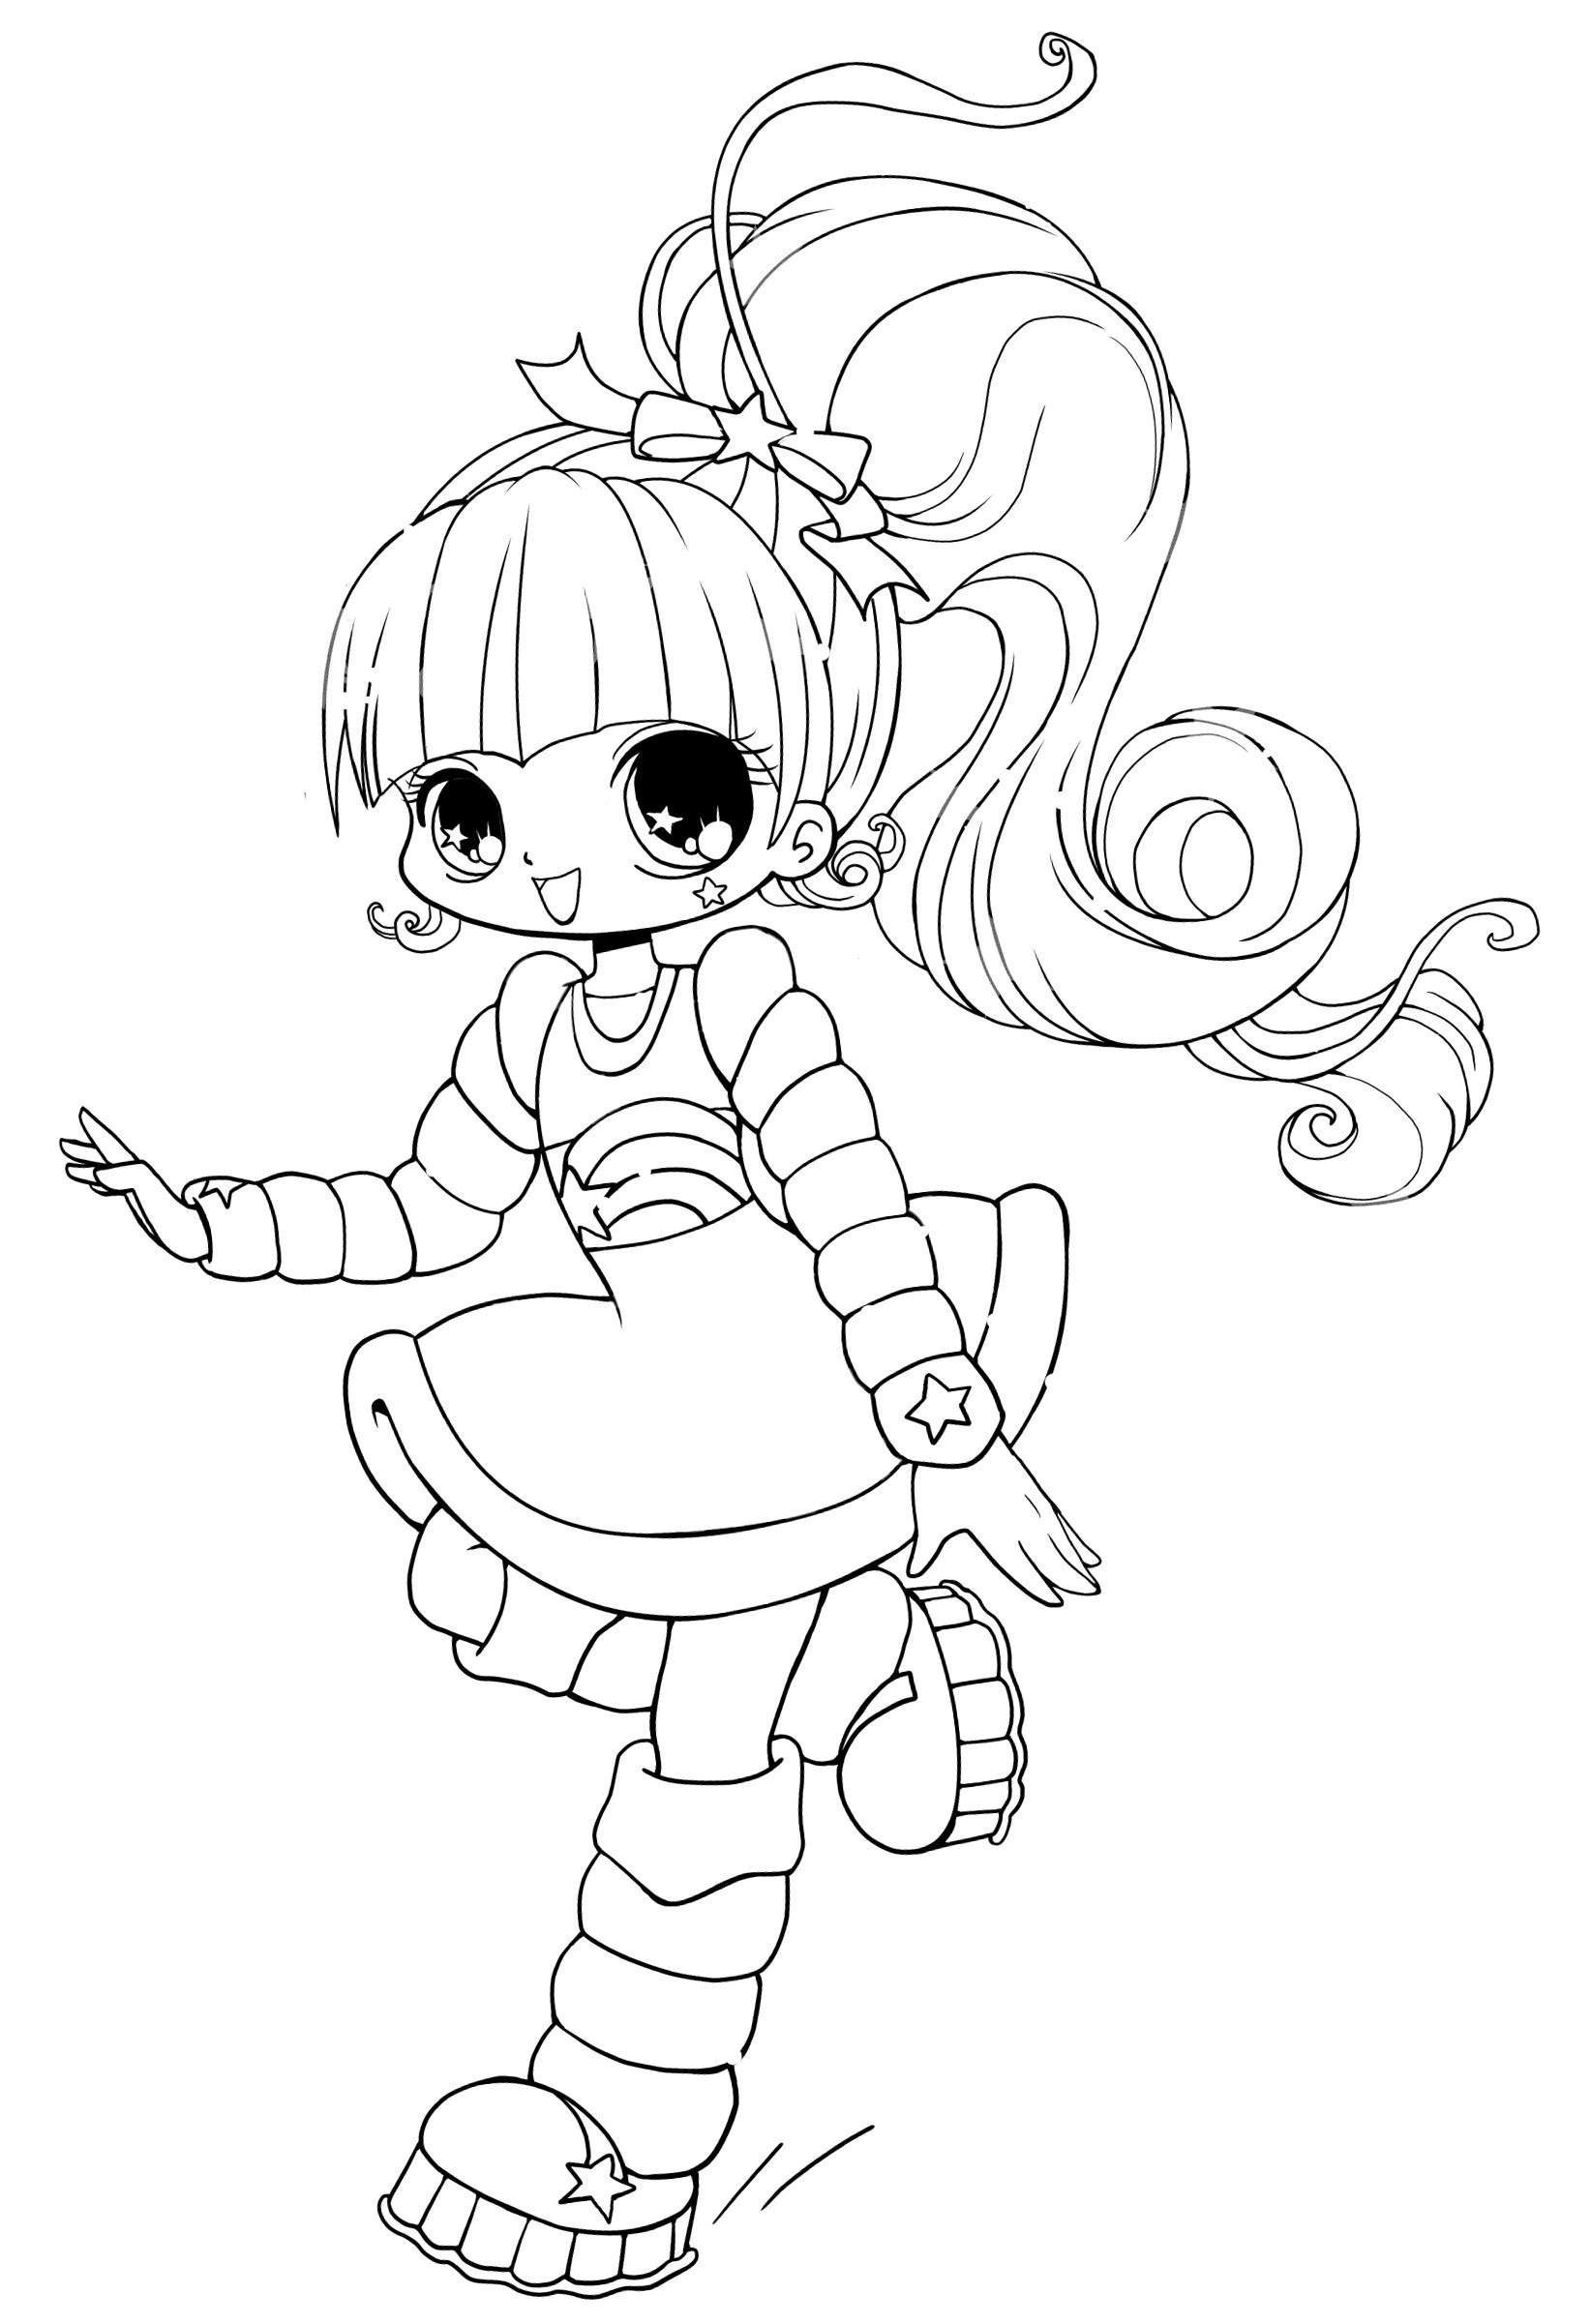 coloring pages women black women coloring pages at getdrawings free download women pages coloring